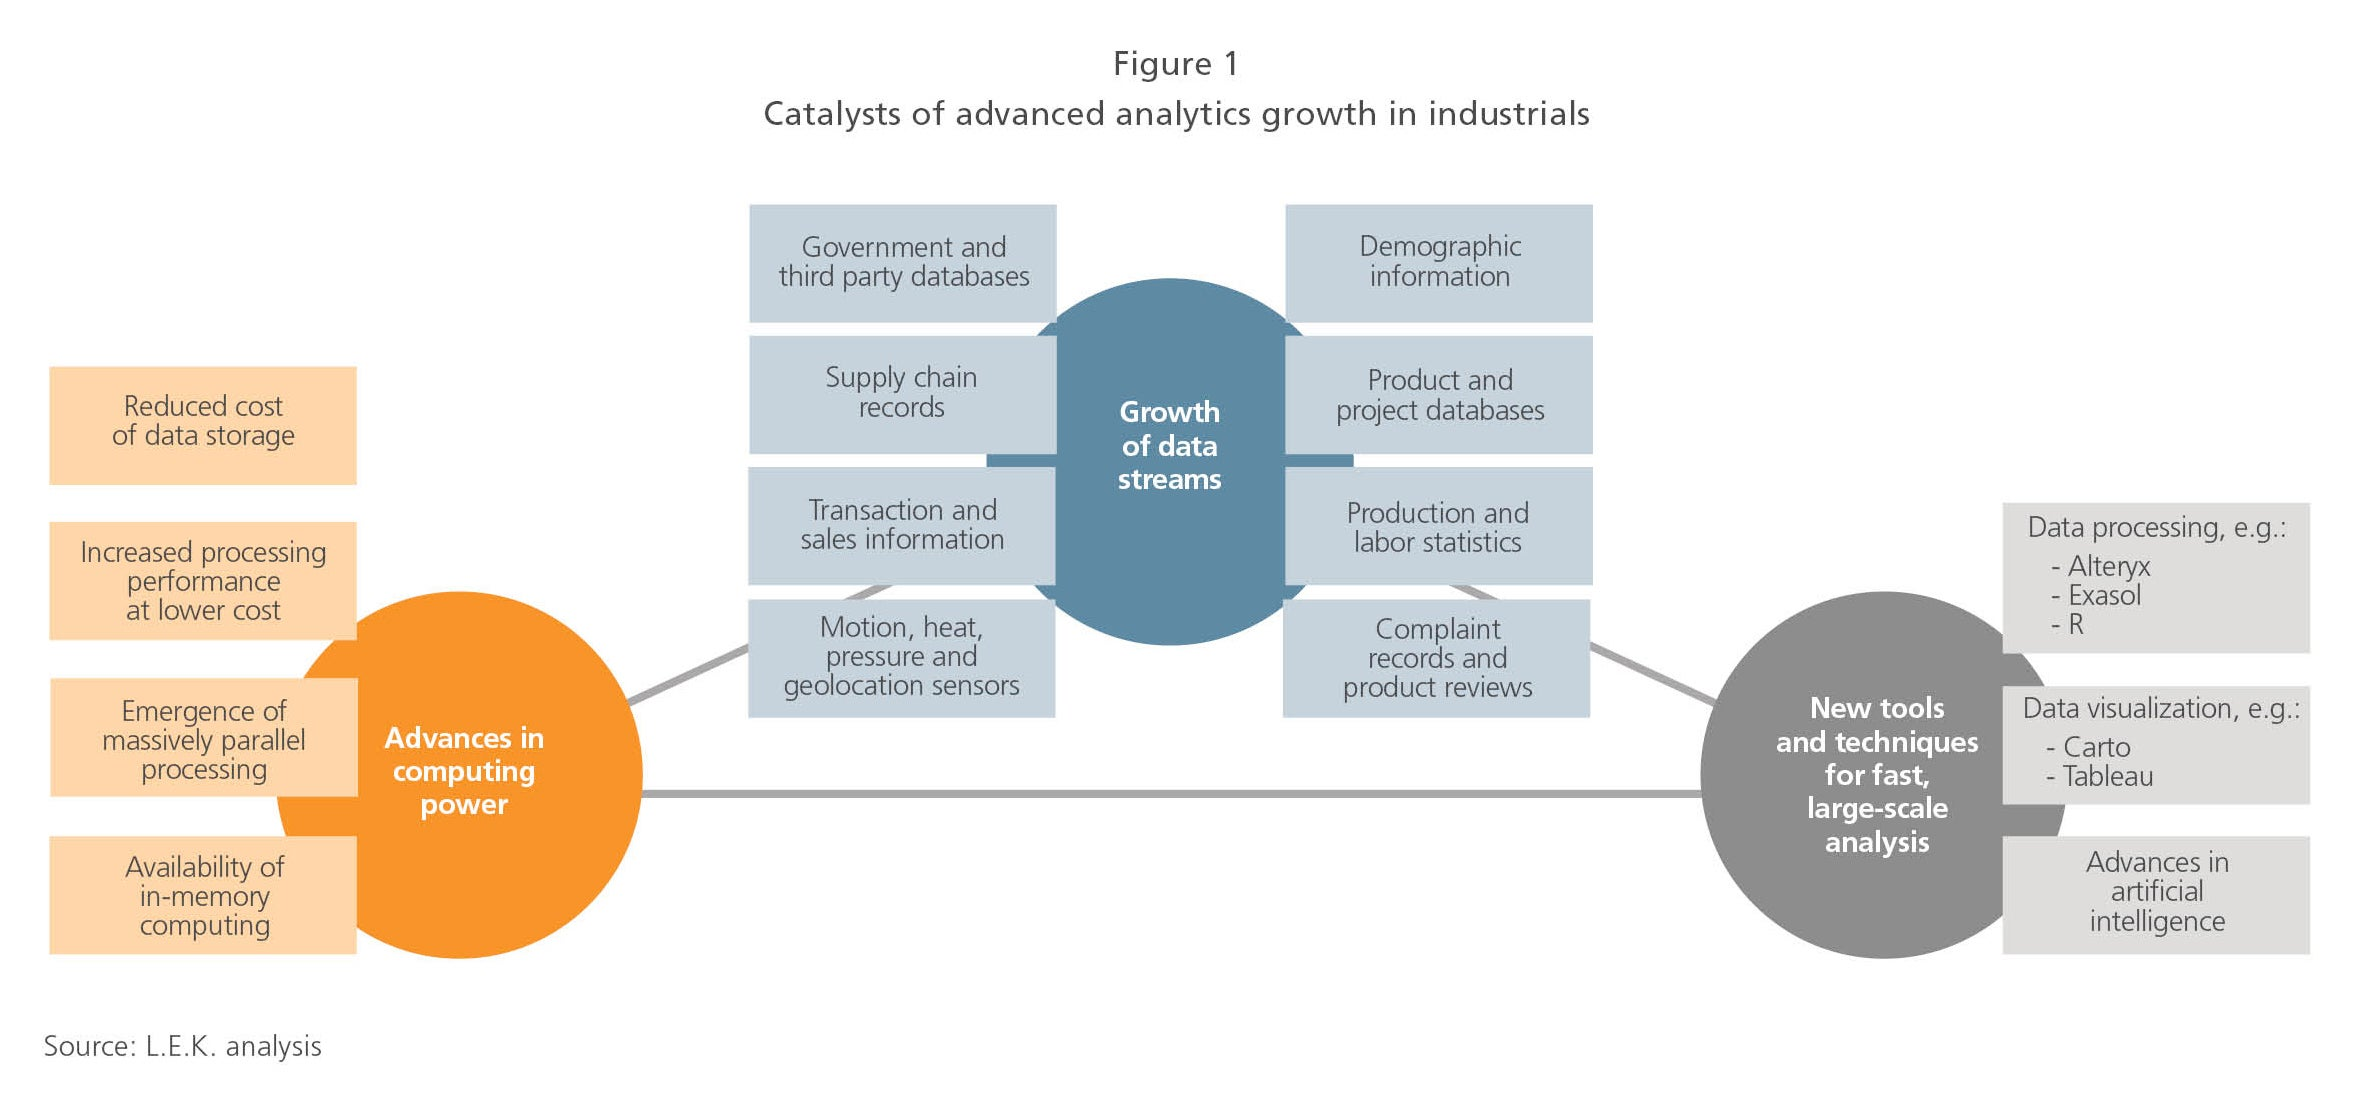 Catalysts of advanced analytics growth in industrials